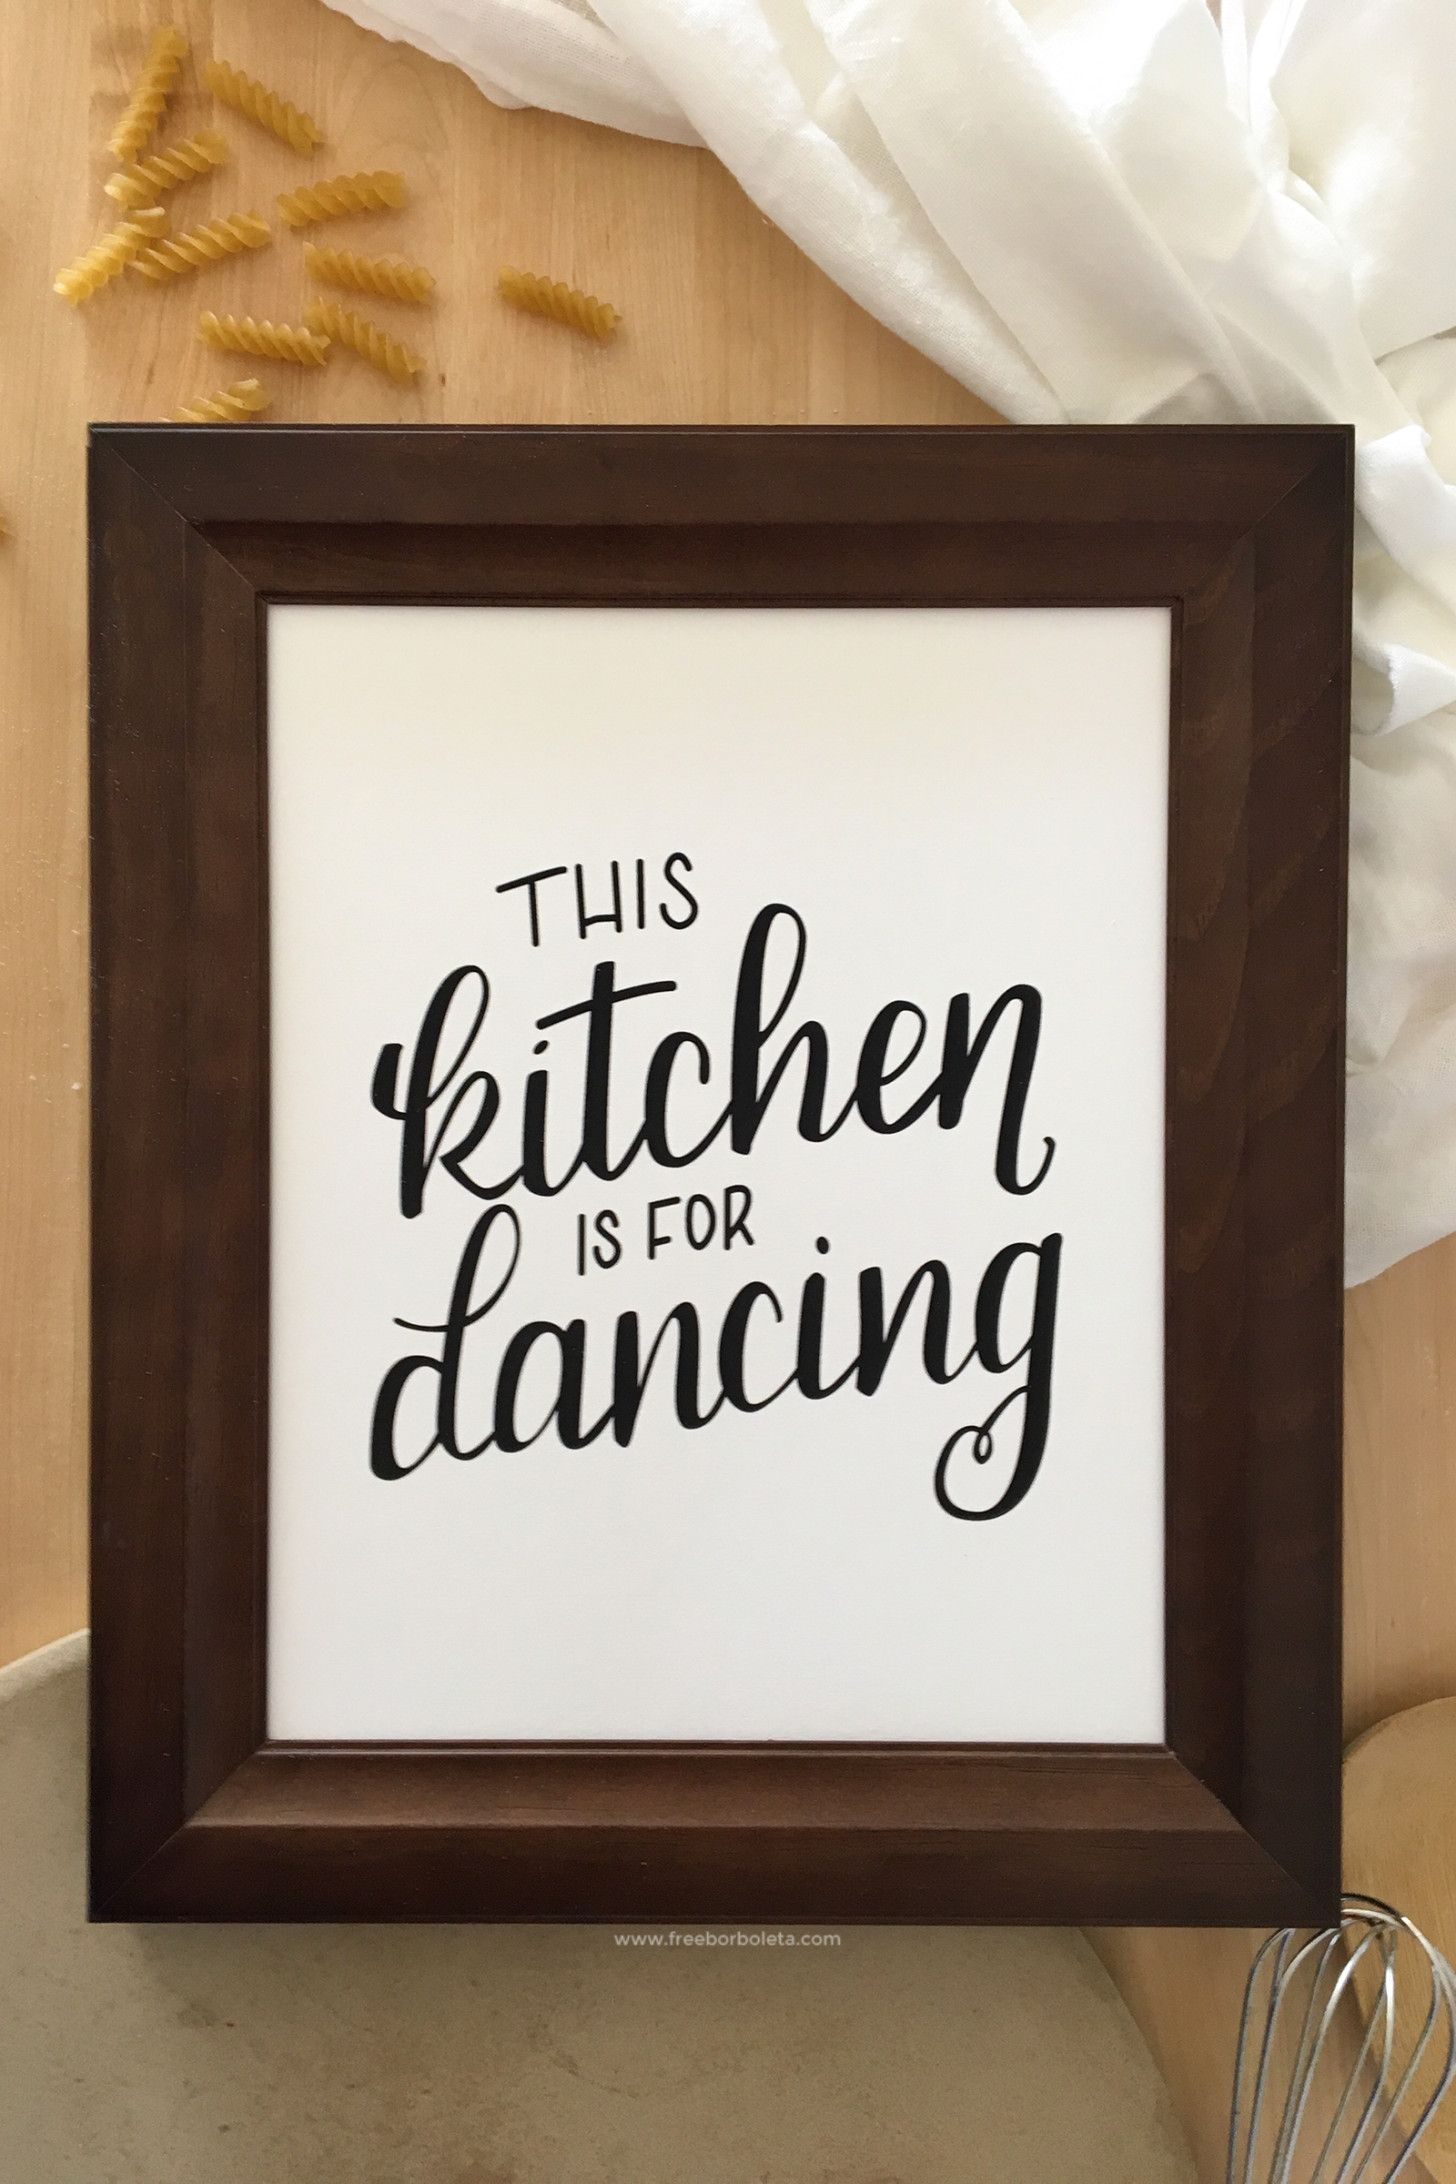 New Arrivals: Nursery & Kitchen Wall Decor | Kitchen wall ...